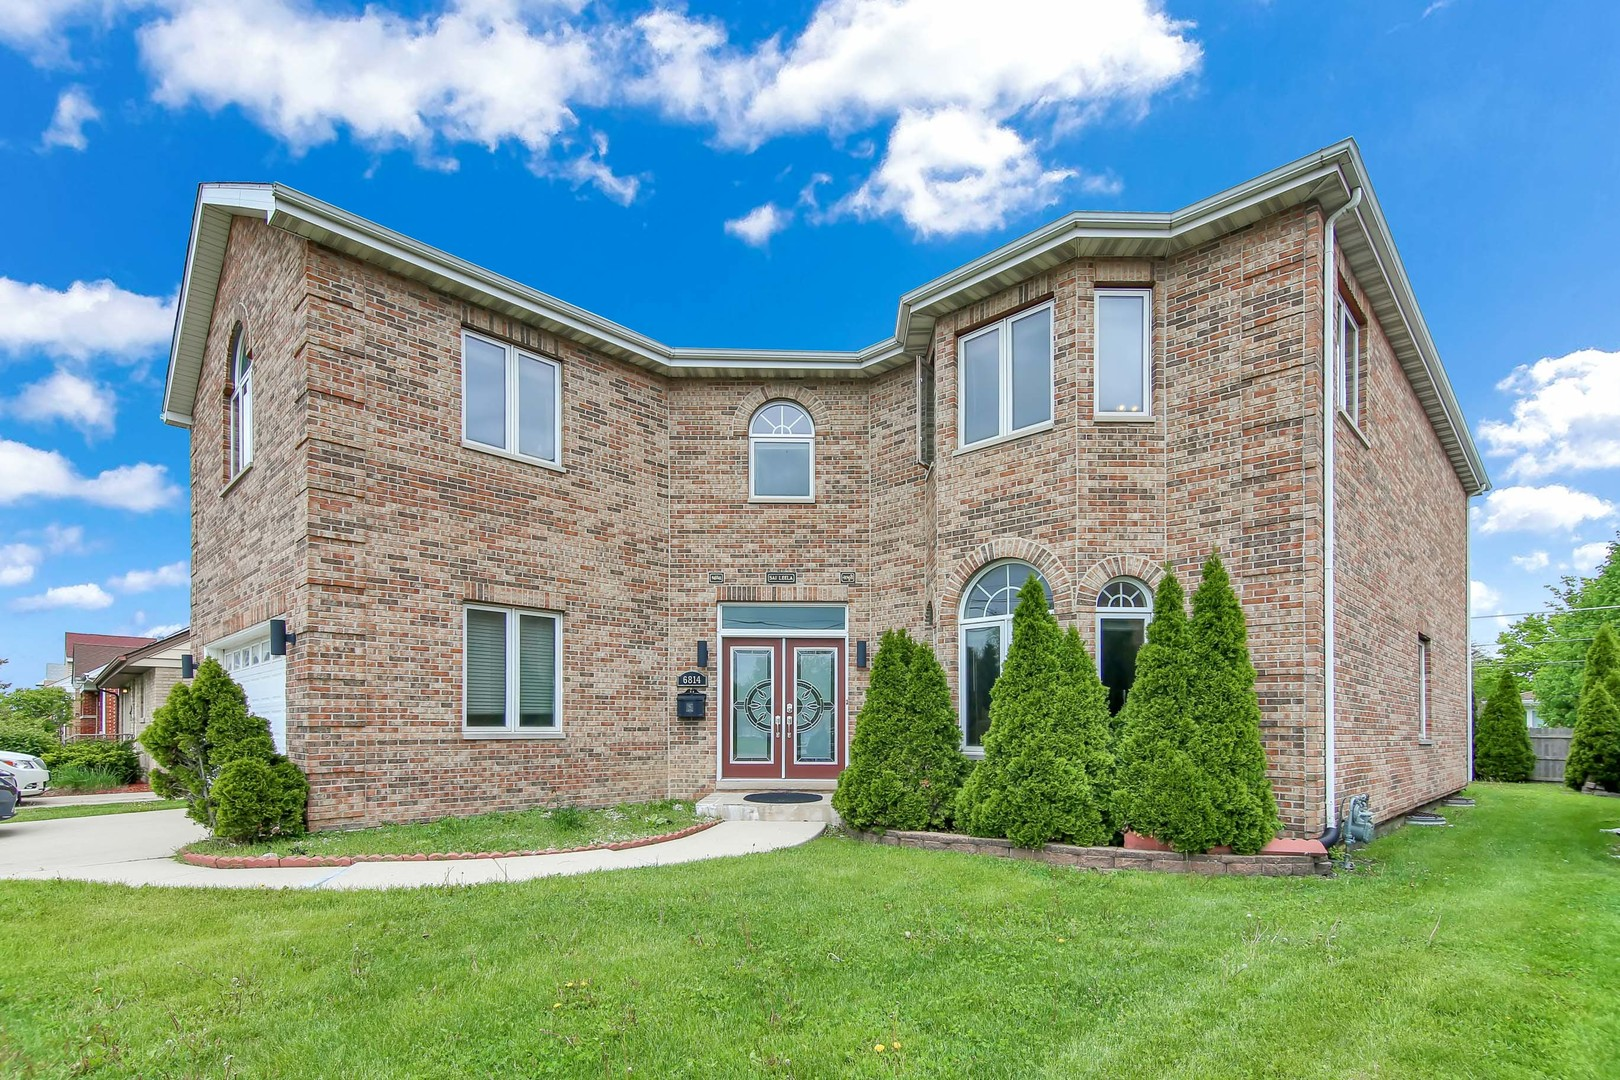 6814 West Oakton Street, Niles, Illinois